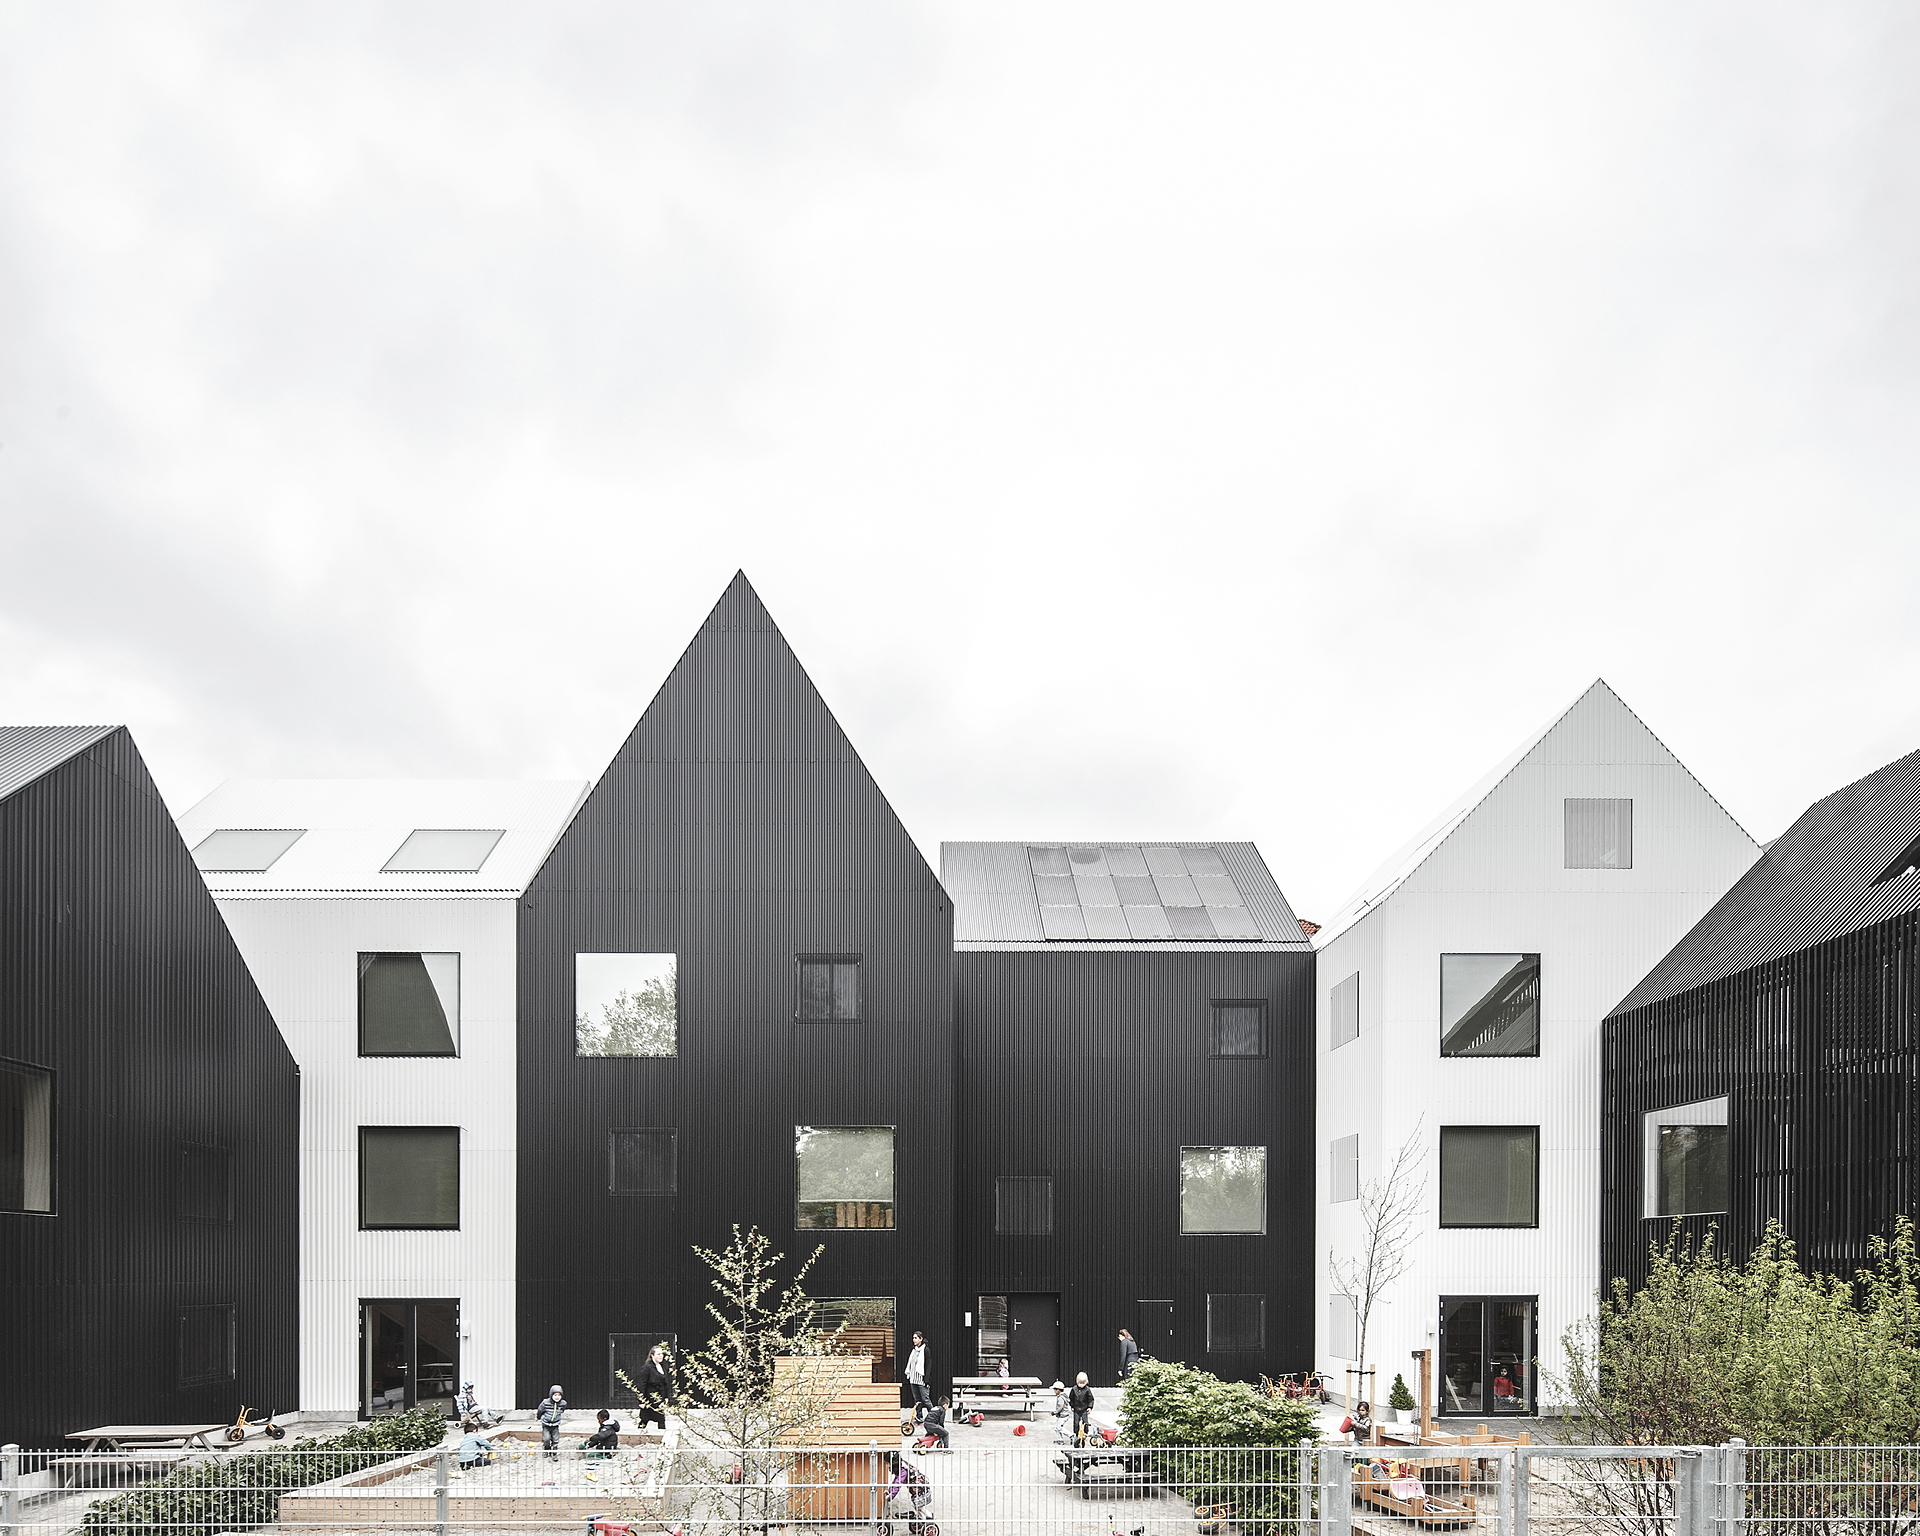 COBE: Frederiksvej Kindergarten, the pre-school designed by children